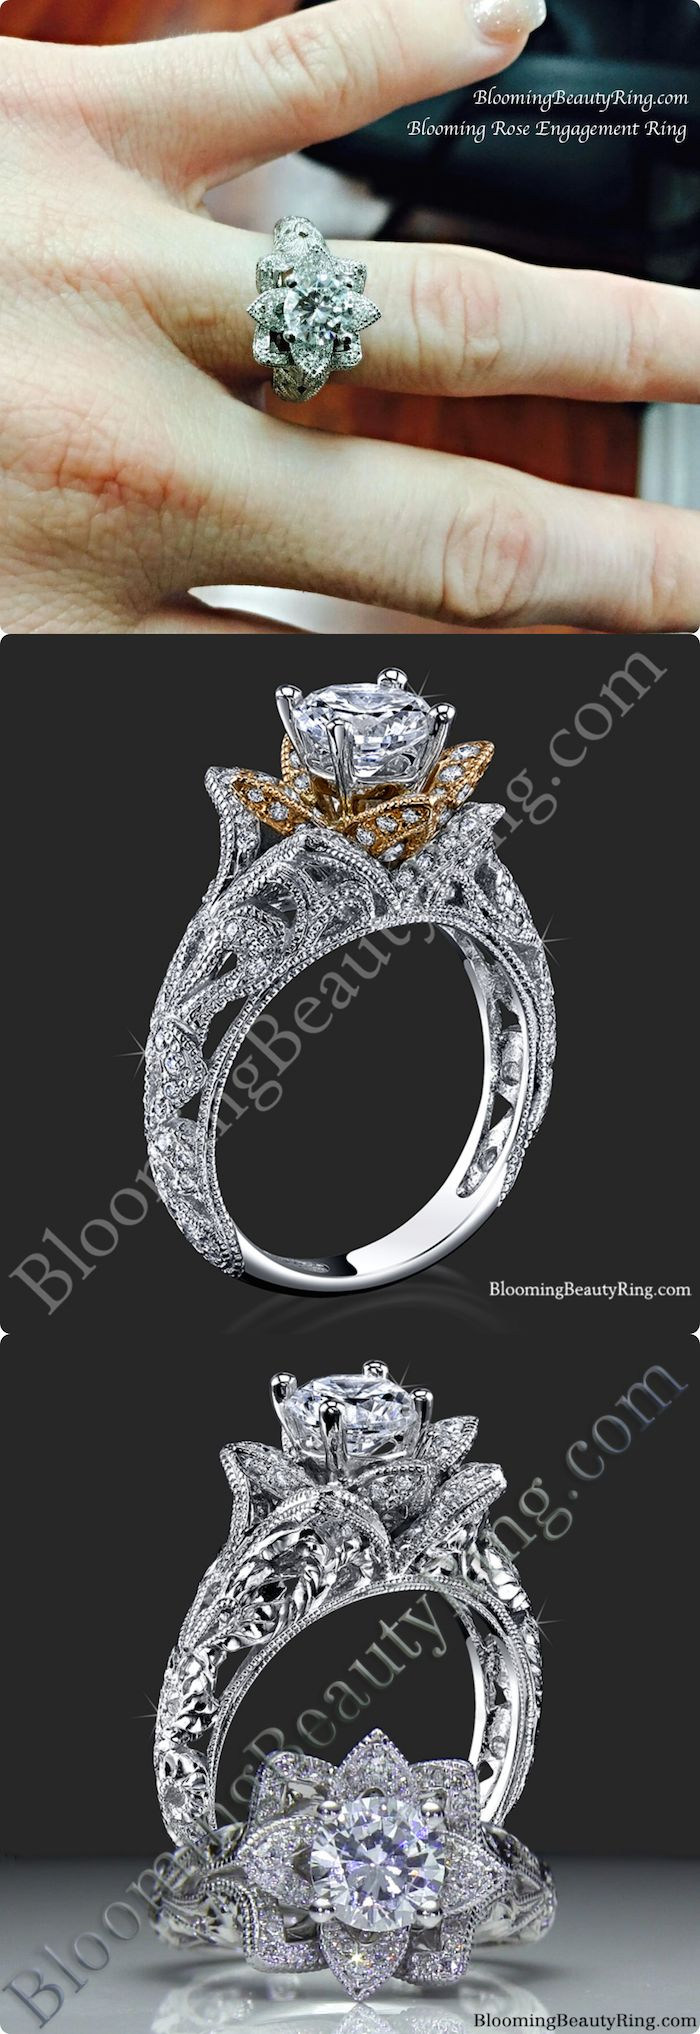 of jrdw work il mount engagement art diamond white zoom setting gold fullxfull milgrain lotus semi blooming patented listing design rings ring flower rose